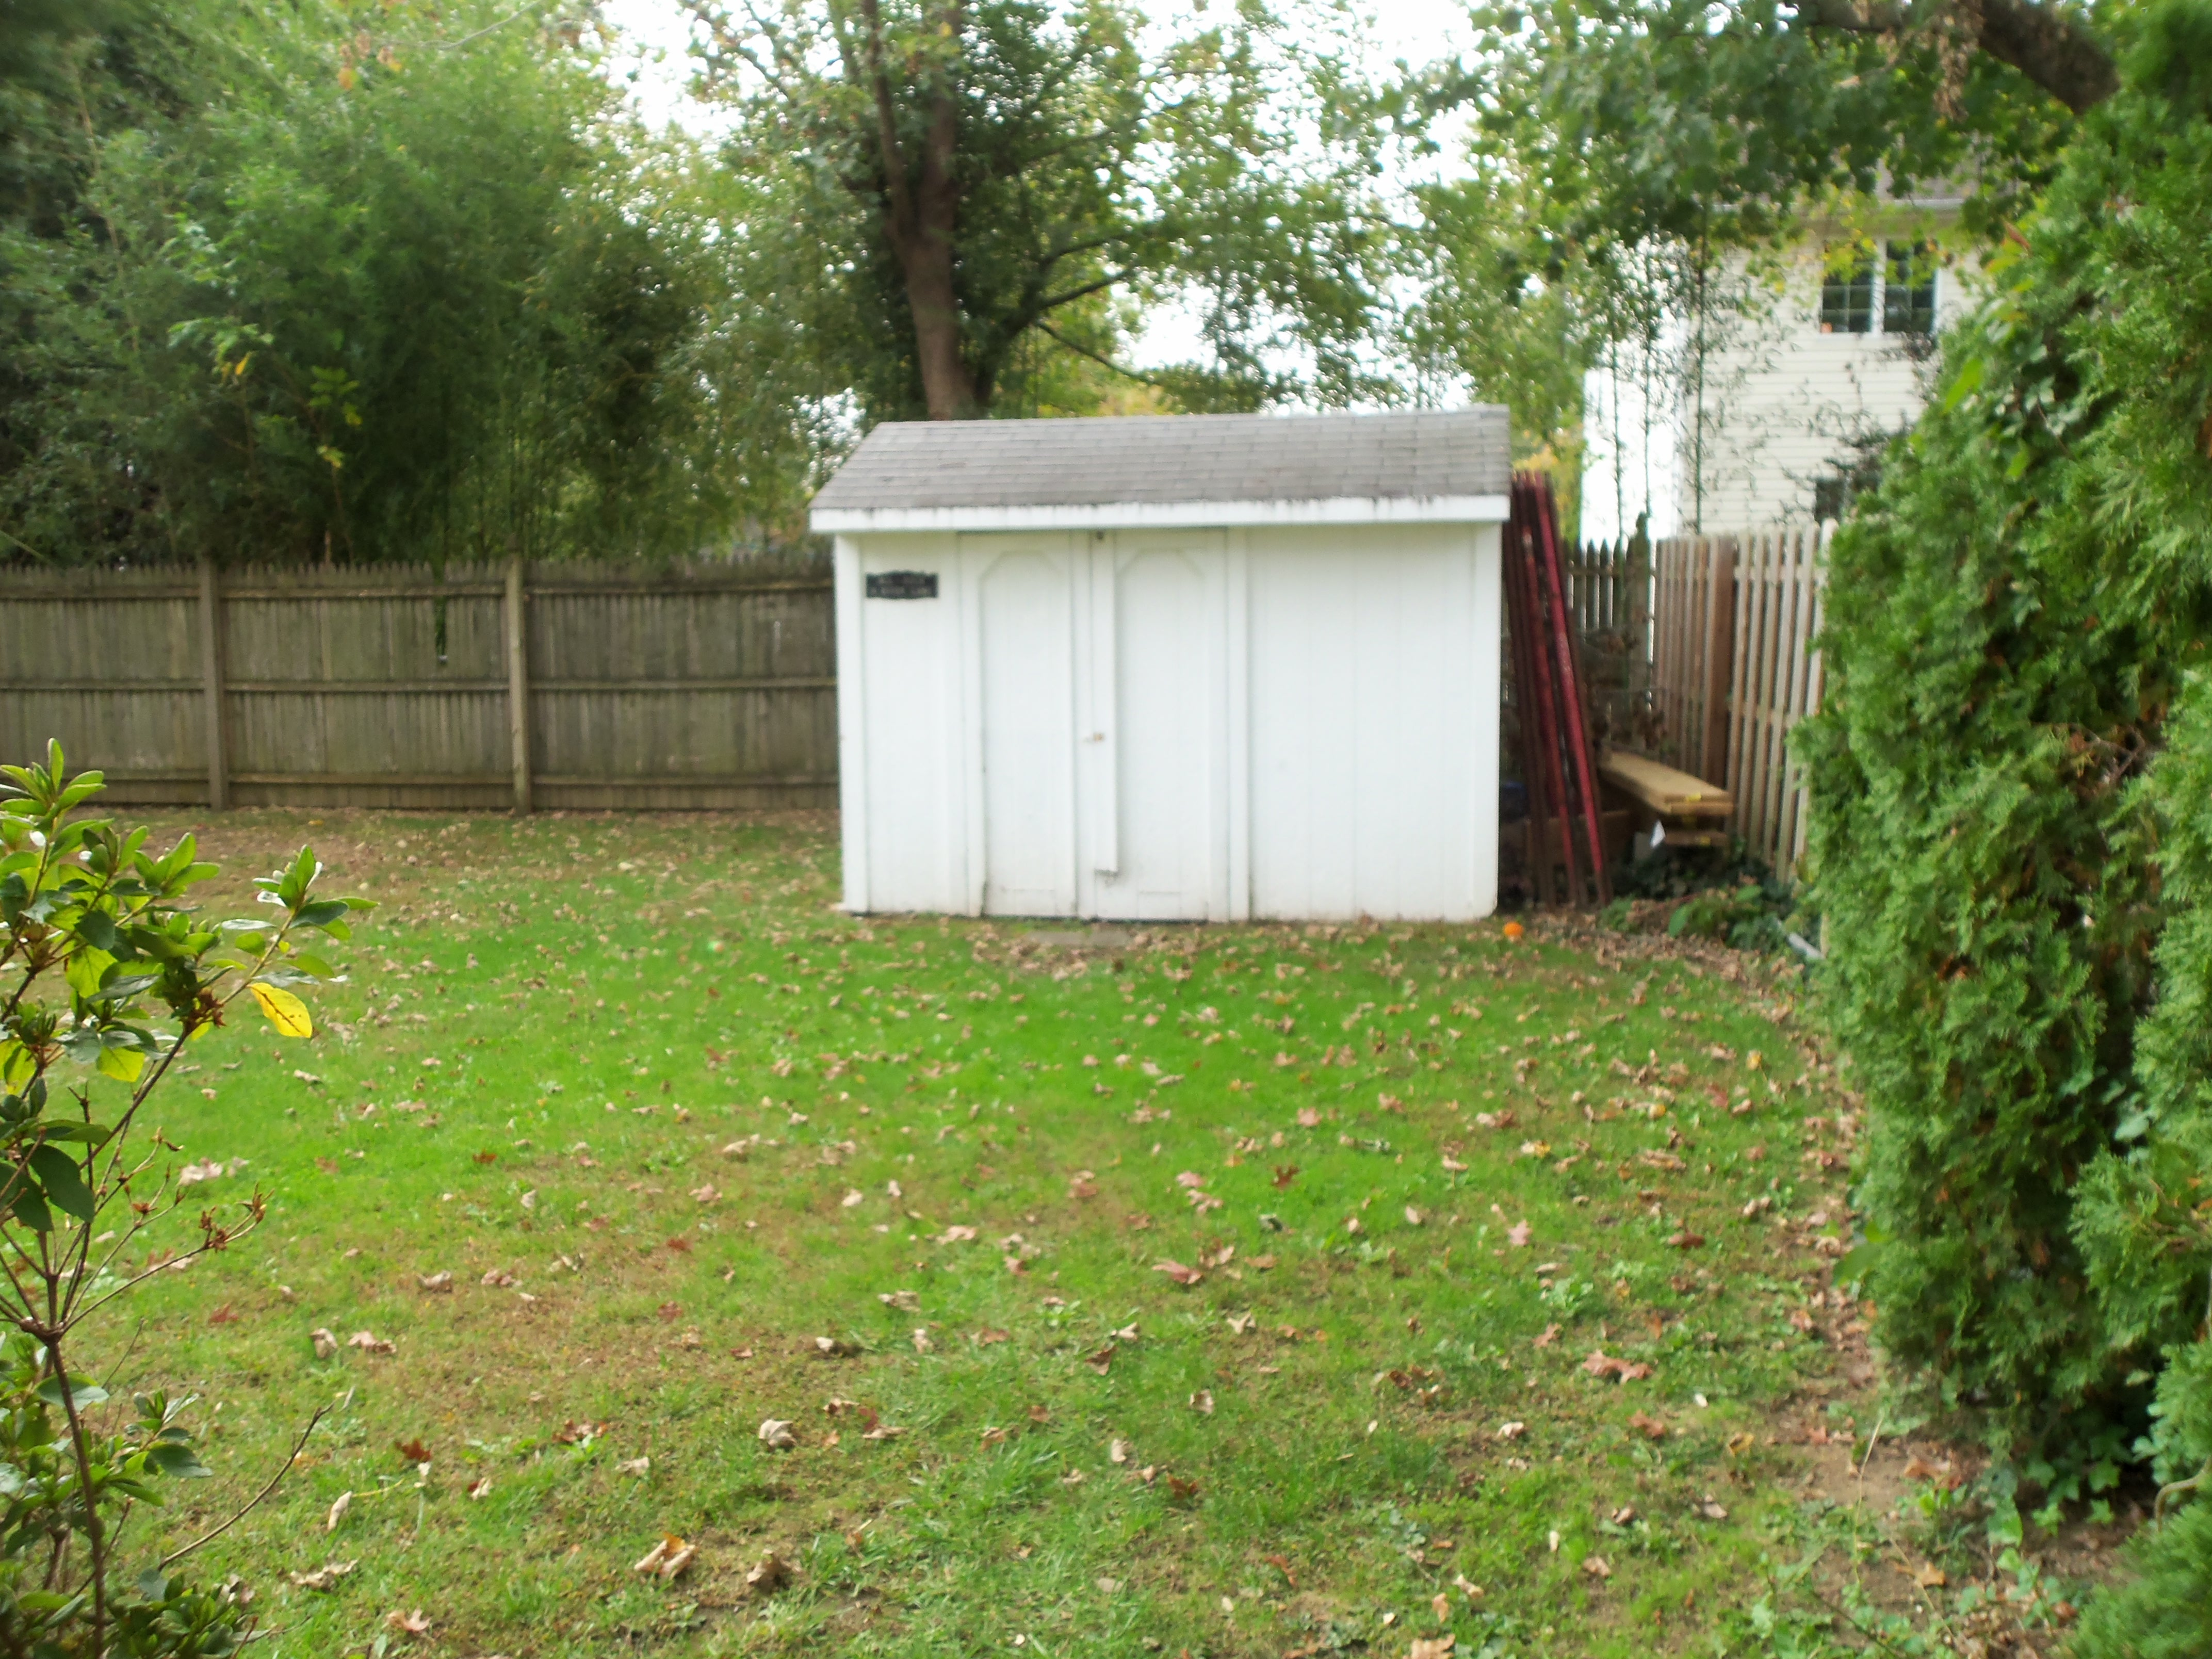 Additional photo for property listing at Adorable Ranch 1127 Lakewood Rd Wall, Nueva Jersey 08736 Estados Unidos